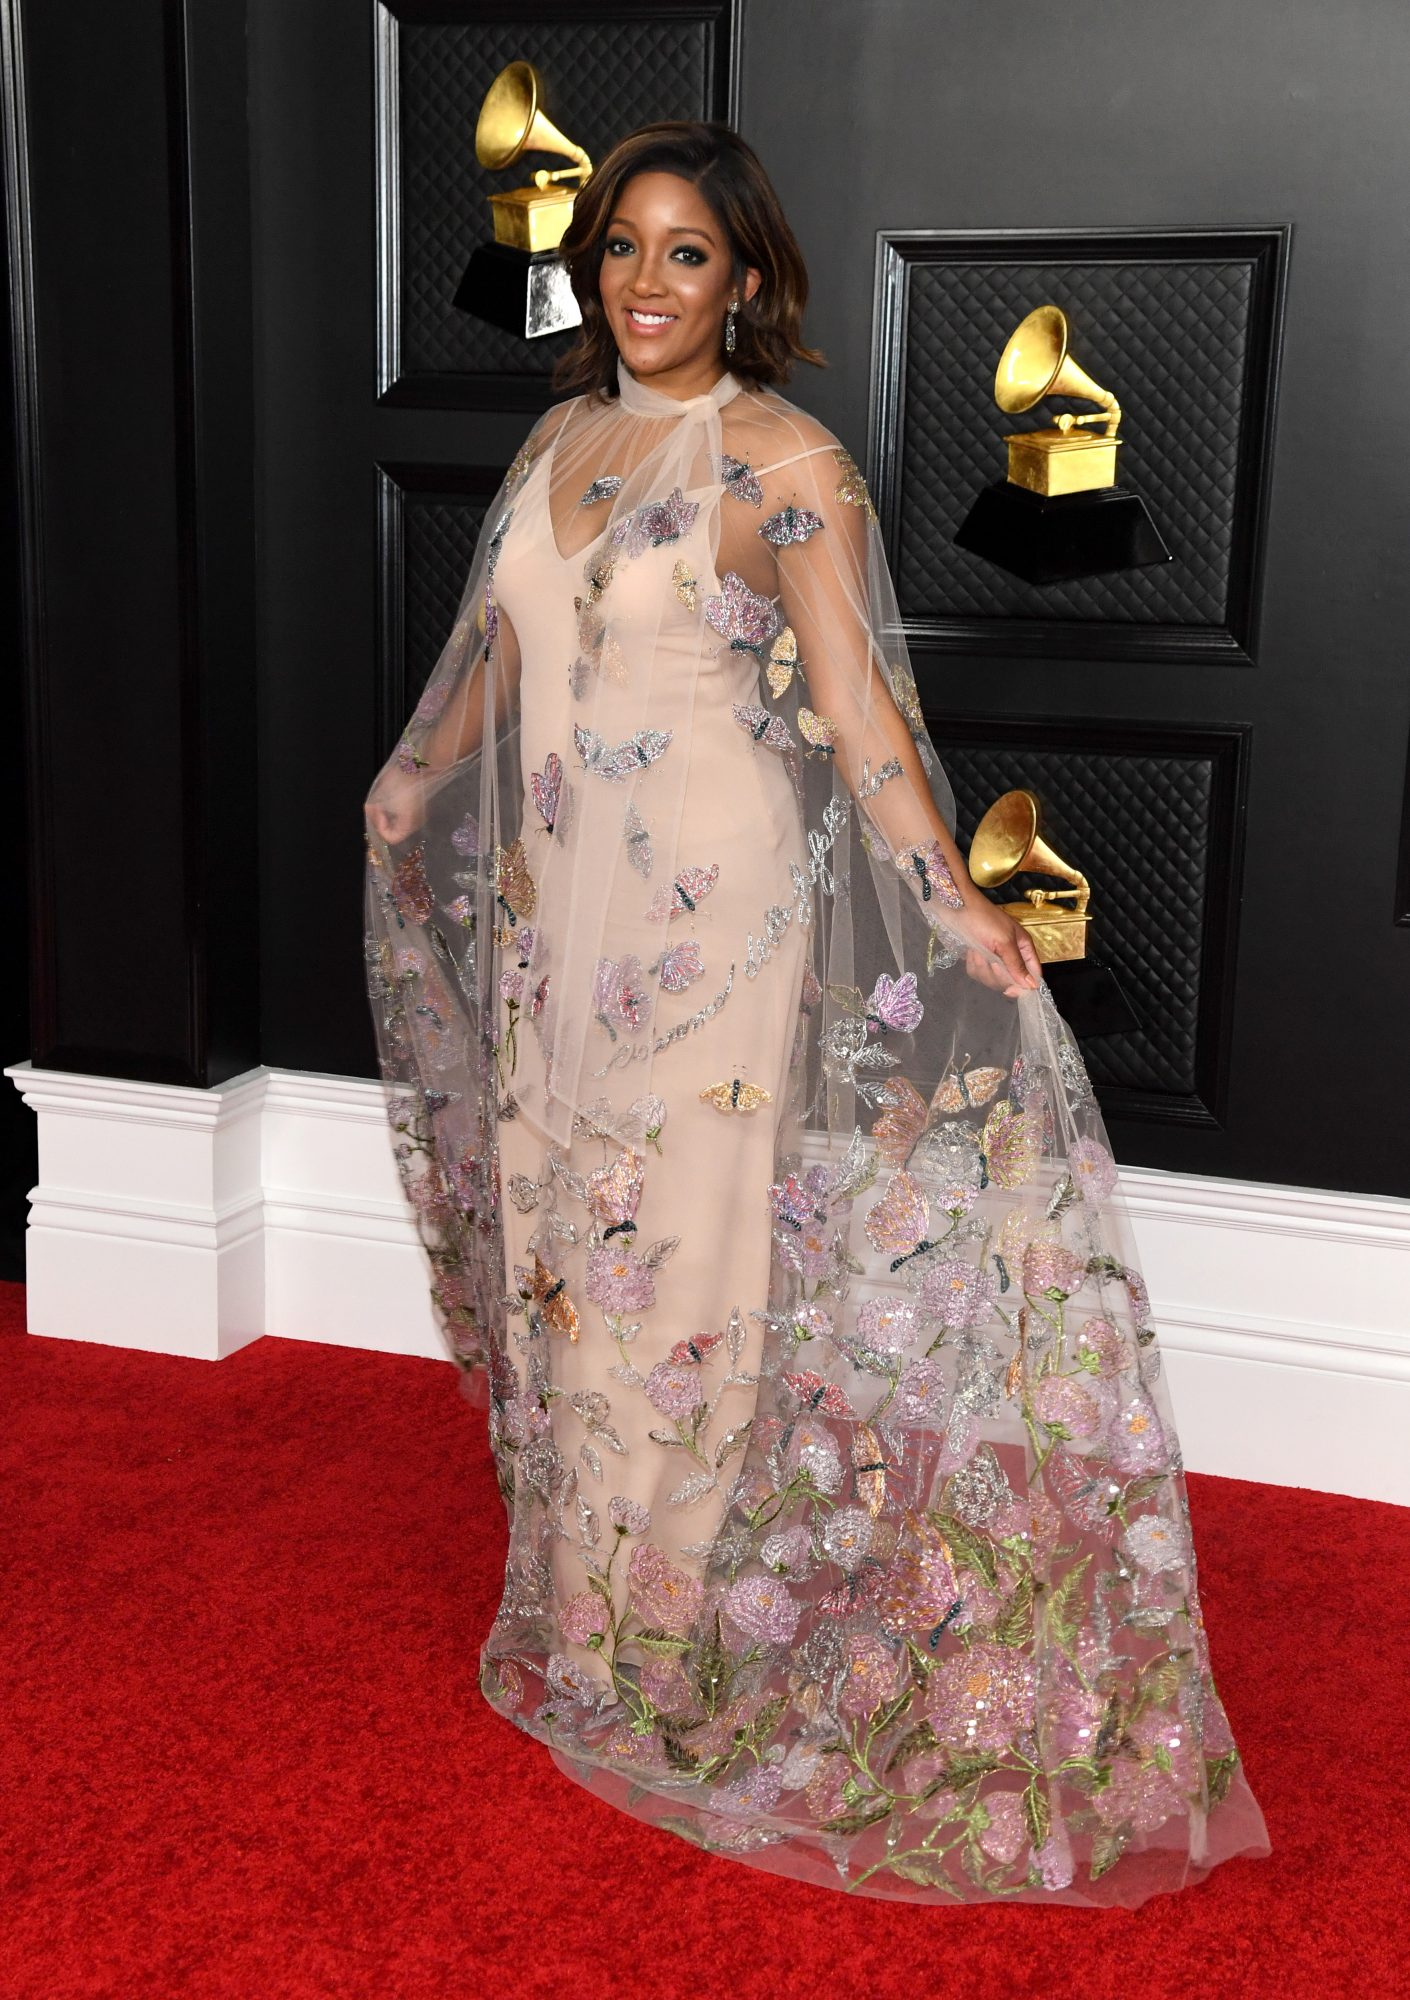 """Guynton is the first Black female solo artist to earn a nomination in a country category thanks to her song """"Black Like Me."""" To celebrate the occasion she wore a sheer Valentino dress with embroidered flowers."""